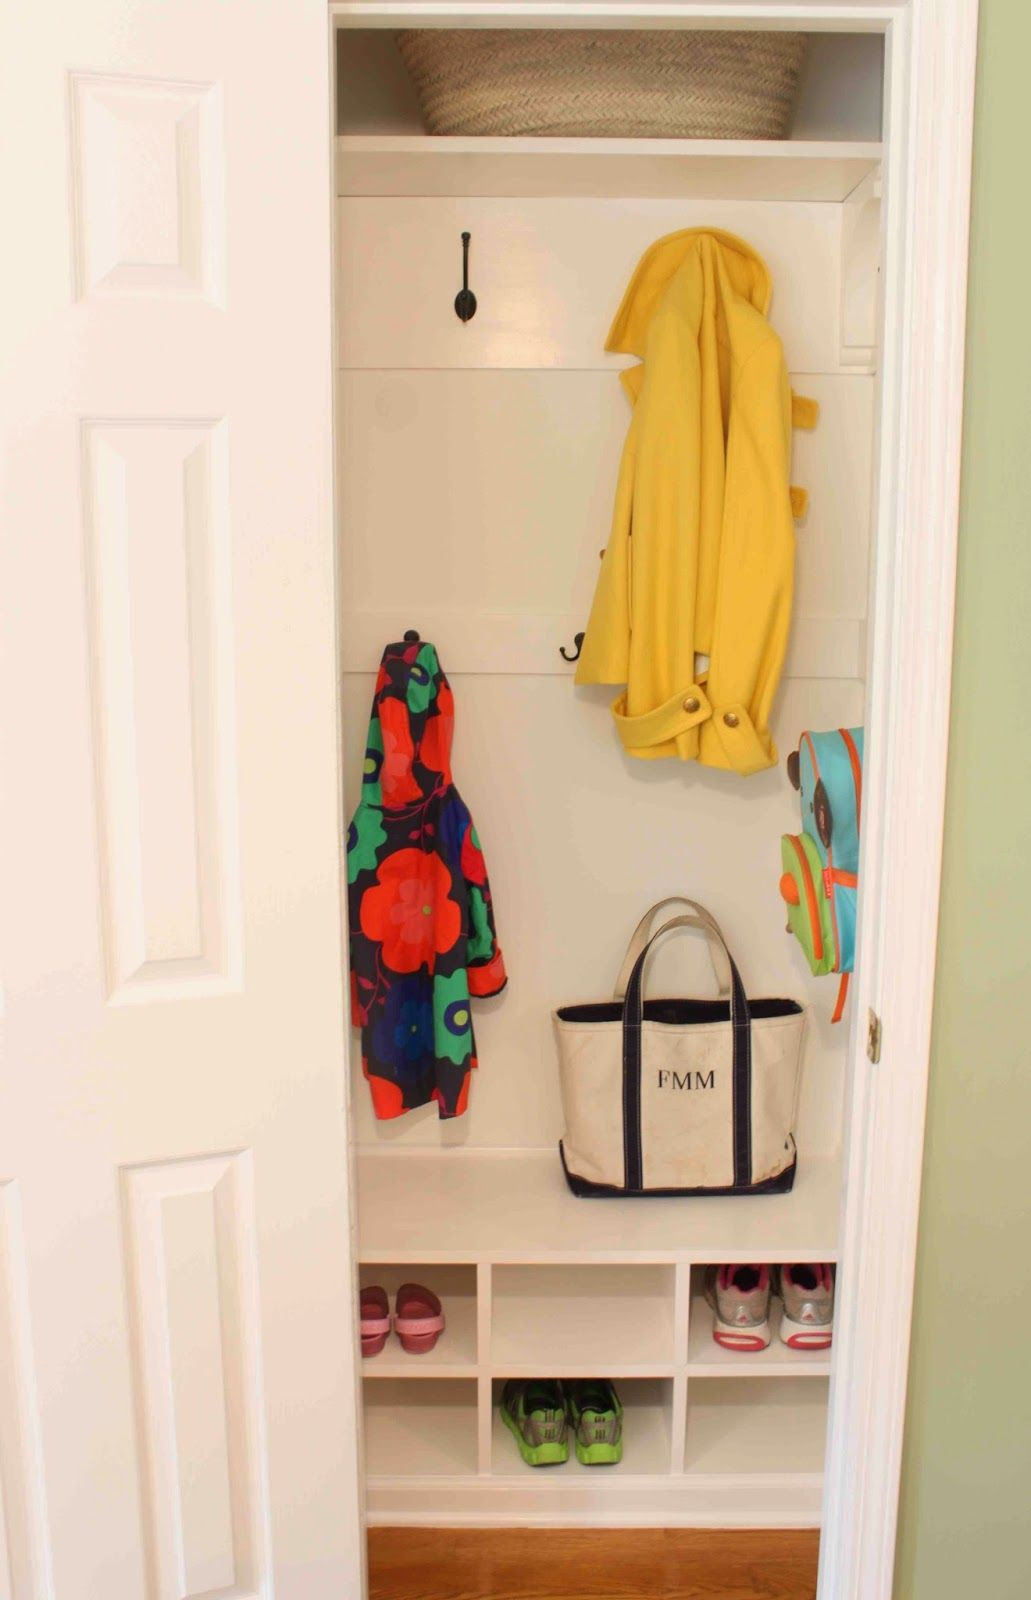 Etonnant By Removing The Hanger Rod And Adding A Cube Storage Bench, Hooks And A  Shelf, This Tiny Closet Was Turned Into A Functional Mudroom.